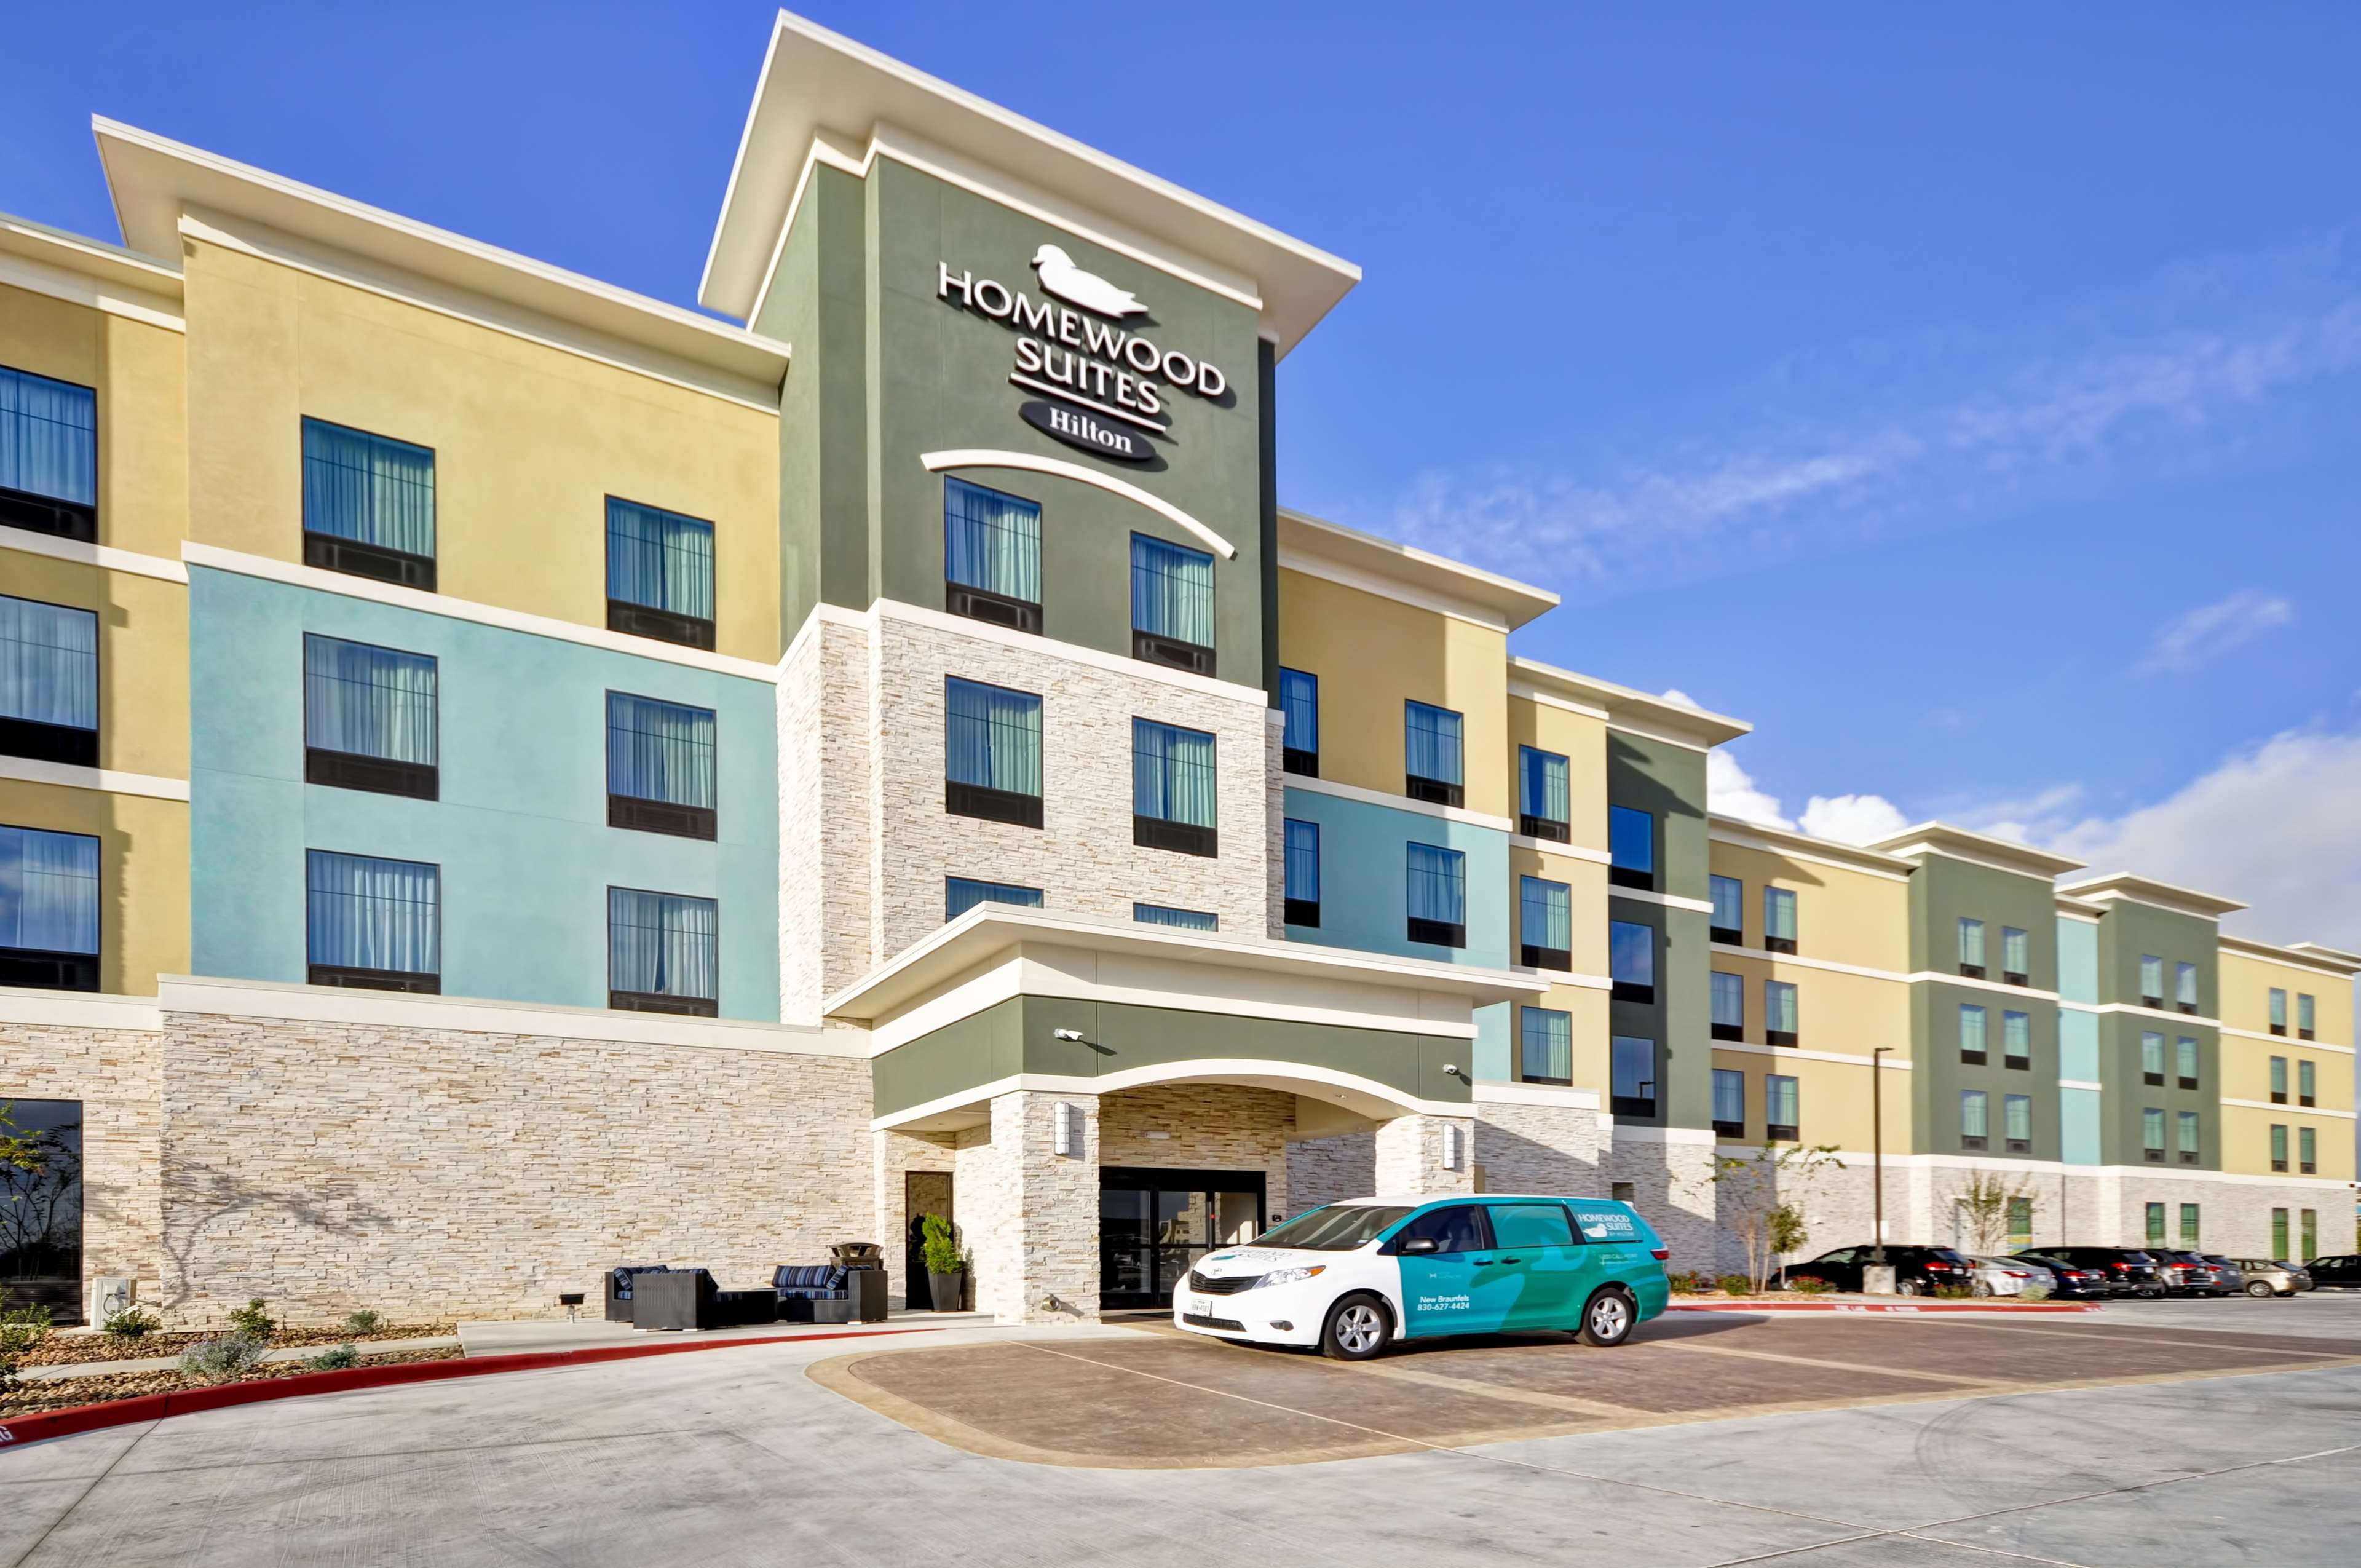 Homewood Suites by Hilton New Braunfels image 10